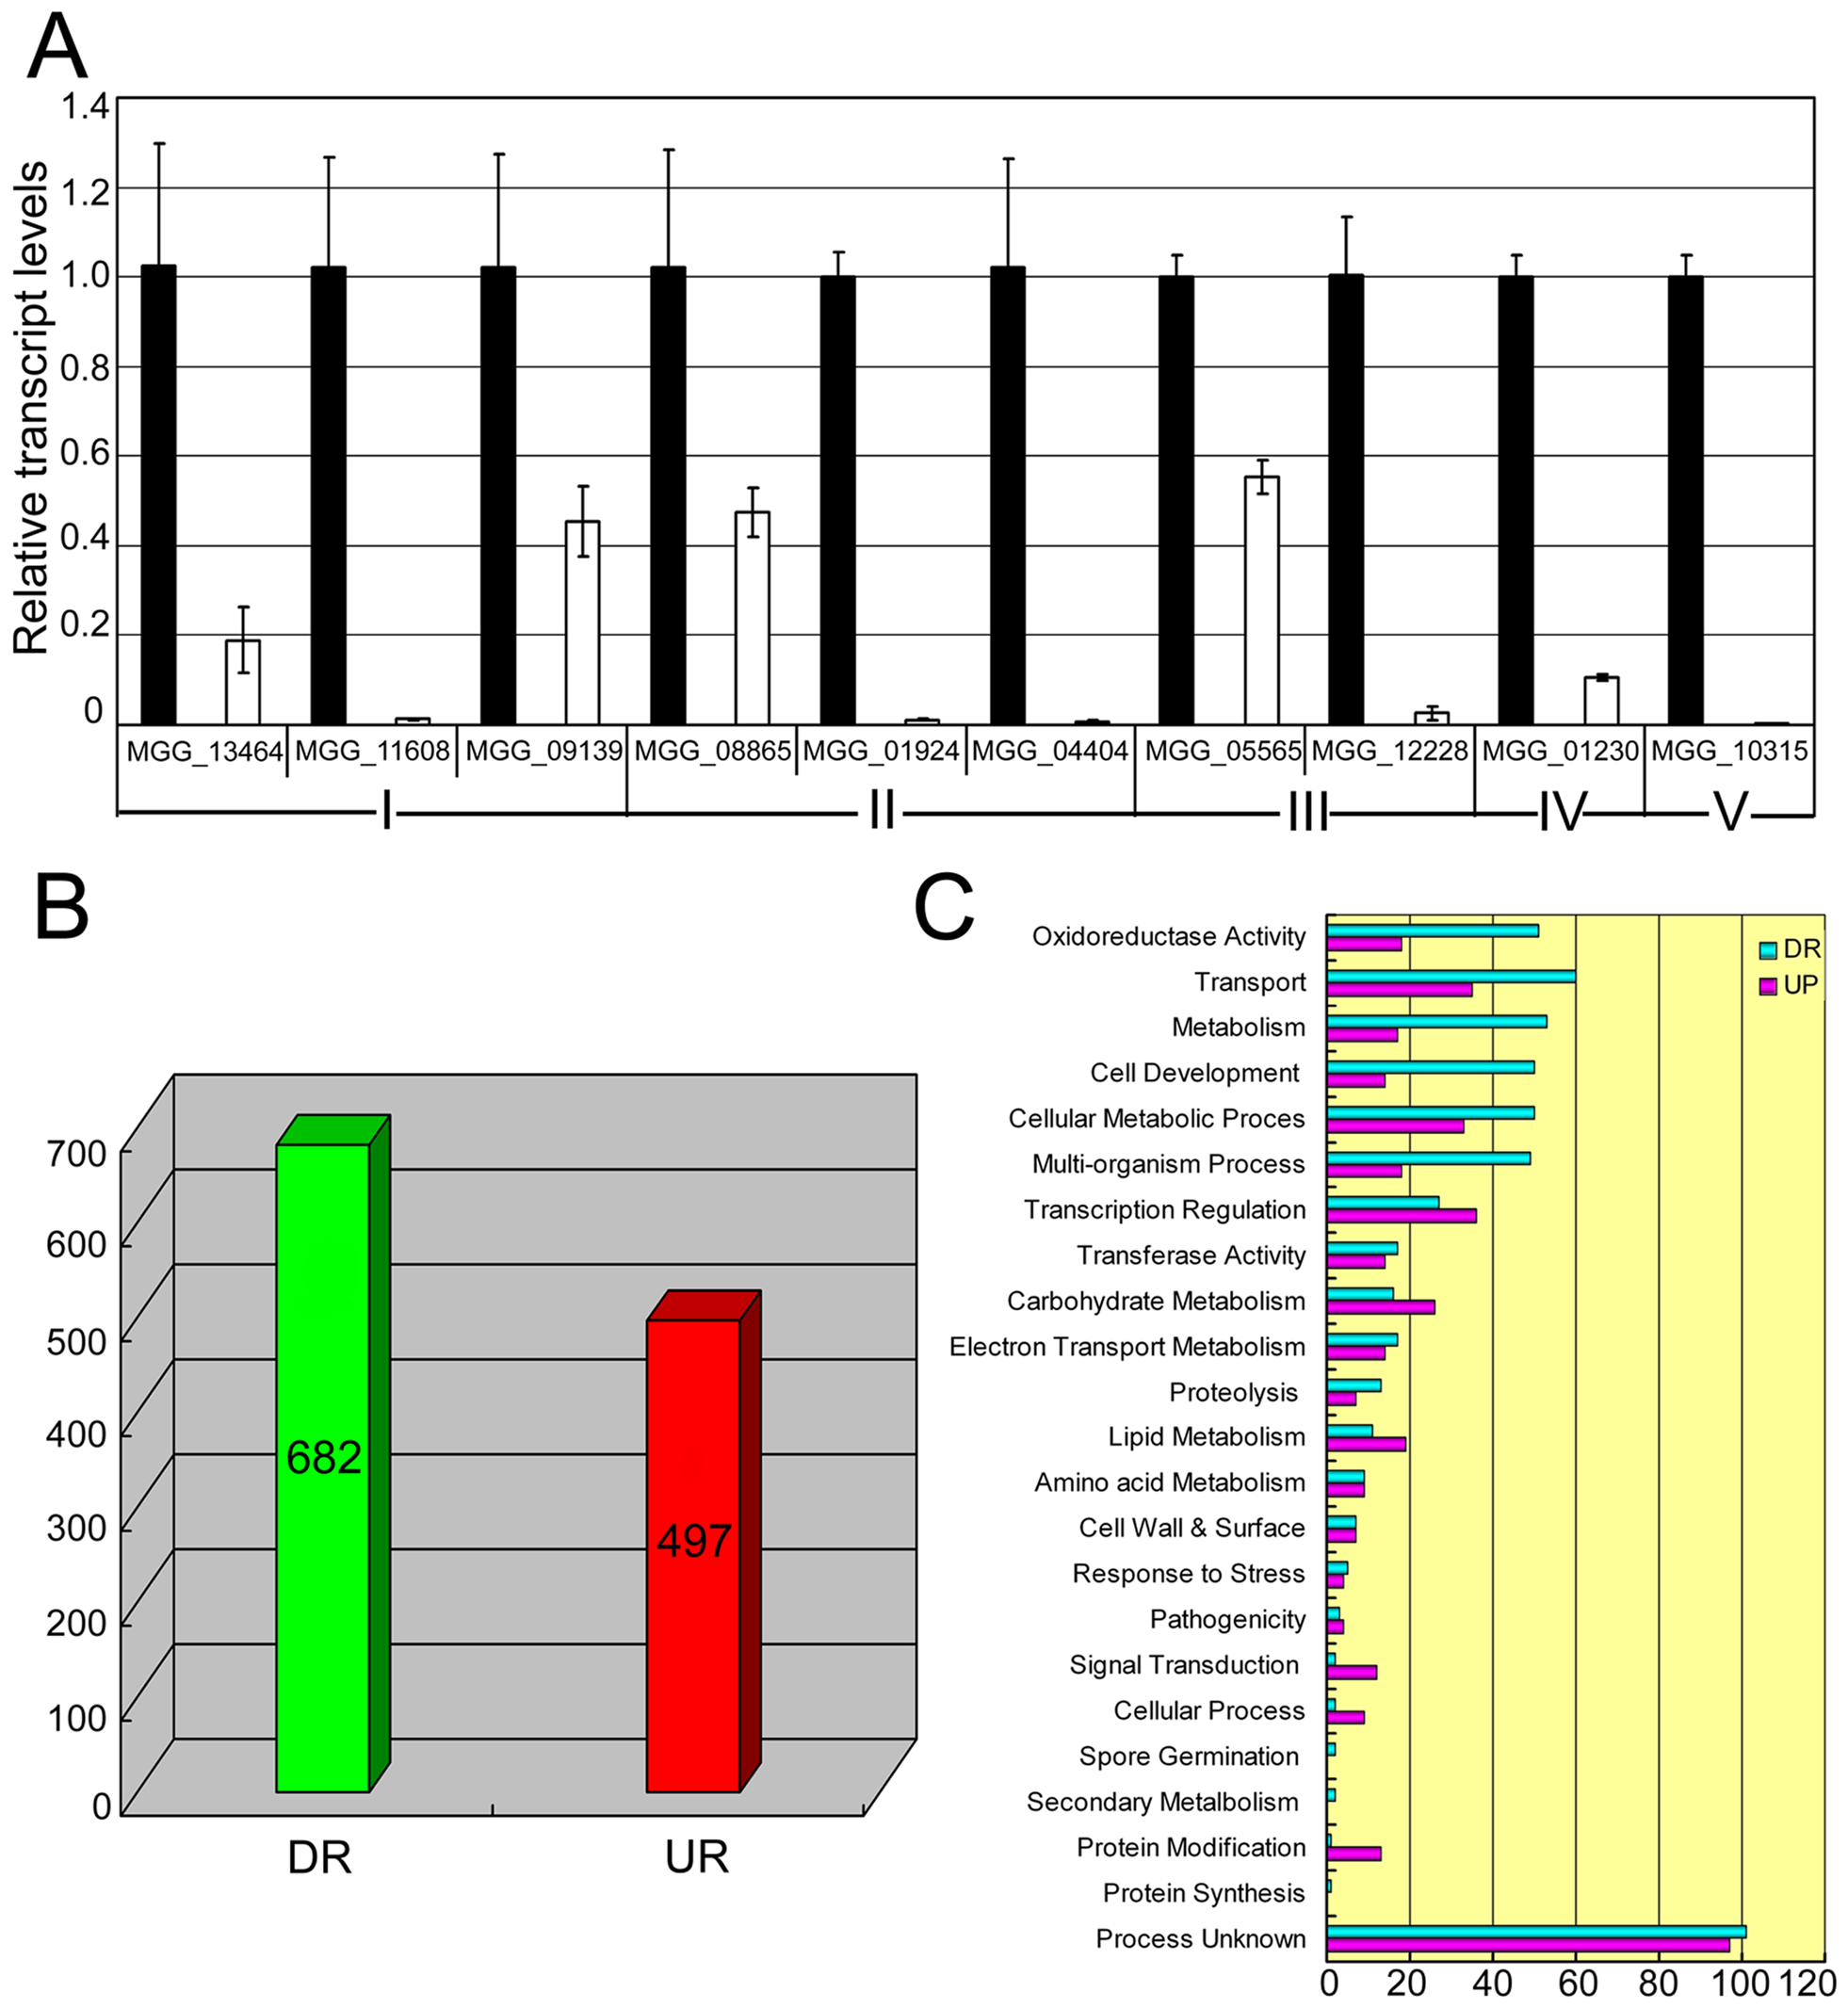 Differential gene expression analysis on transcriptomes of the <i>Moap1</i> mutant and Guy11 strains.